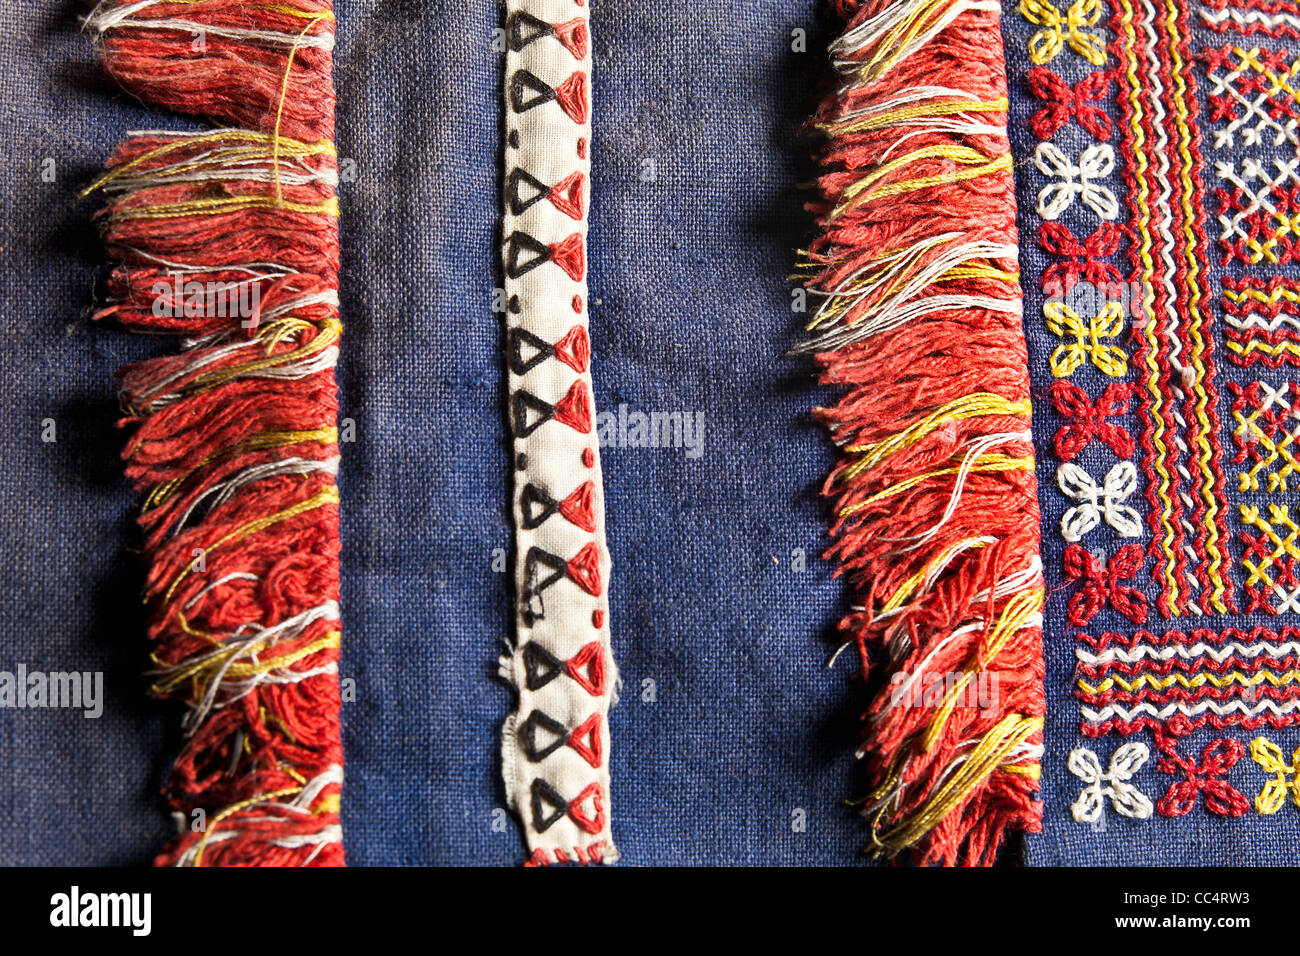 traditional woven clothing textiles & textile of the Philippines local tribes in Mindanao. tribal colored cloth - Stock Image